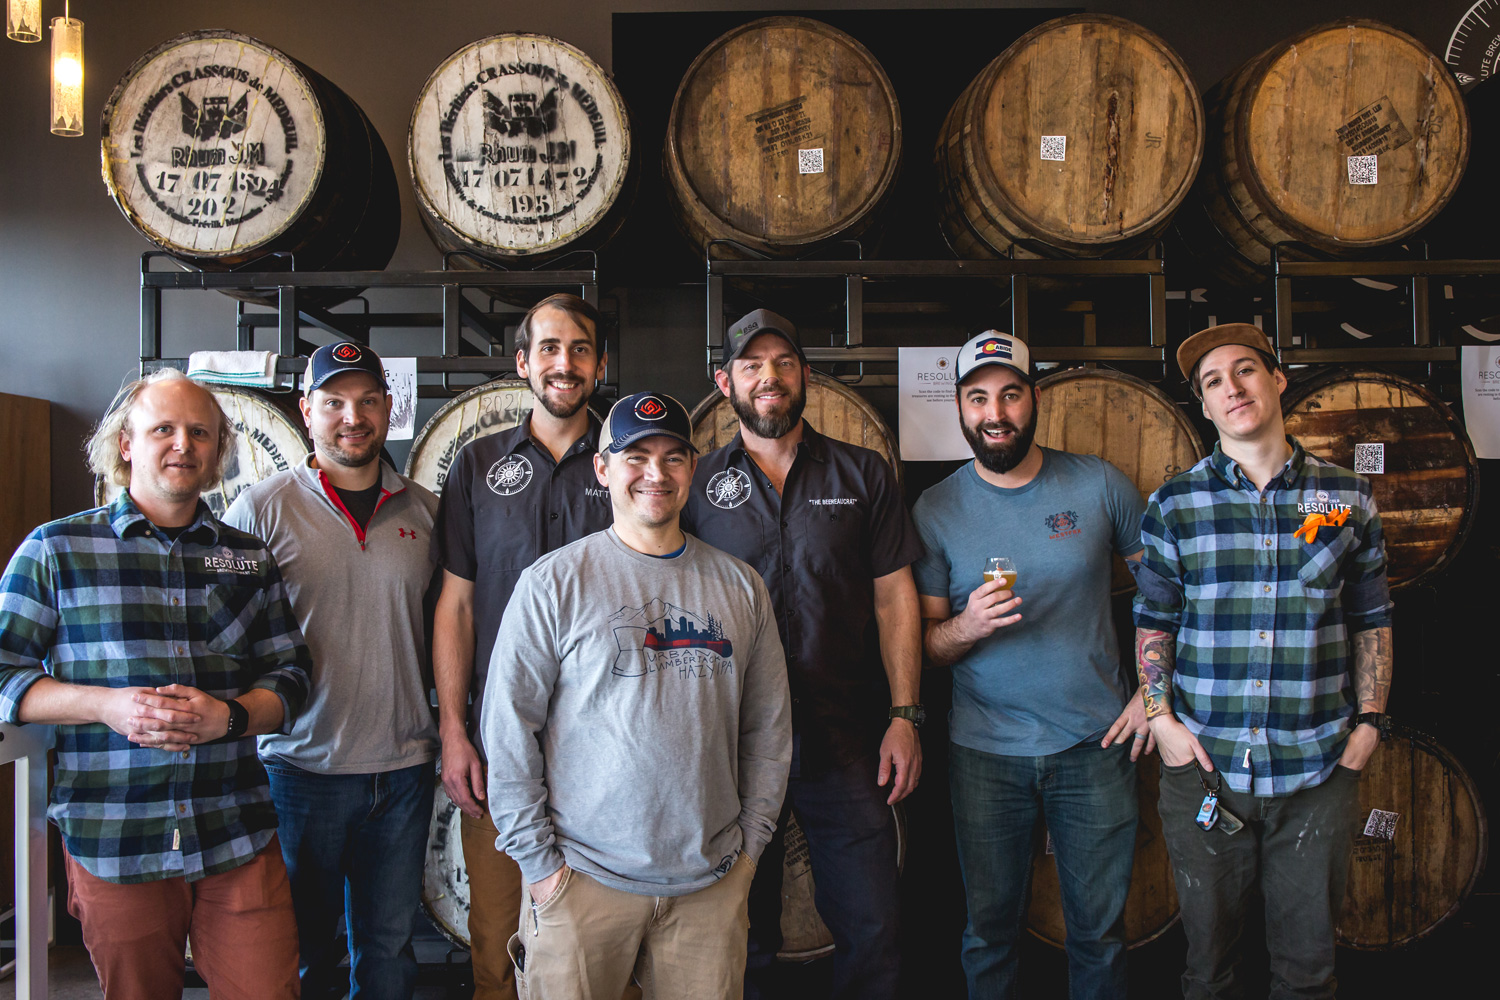 Photo taken at Resolute Brewing with the brewers from Resolute & Westfax. Photo: Melissa Markle | M. Markle Photography